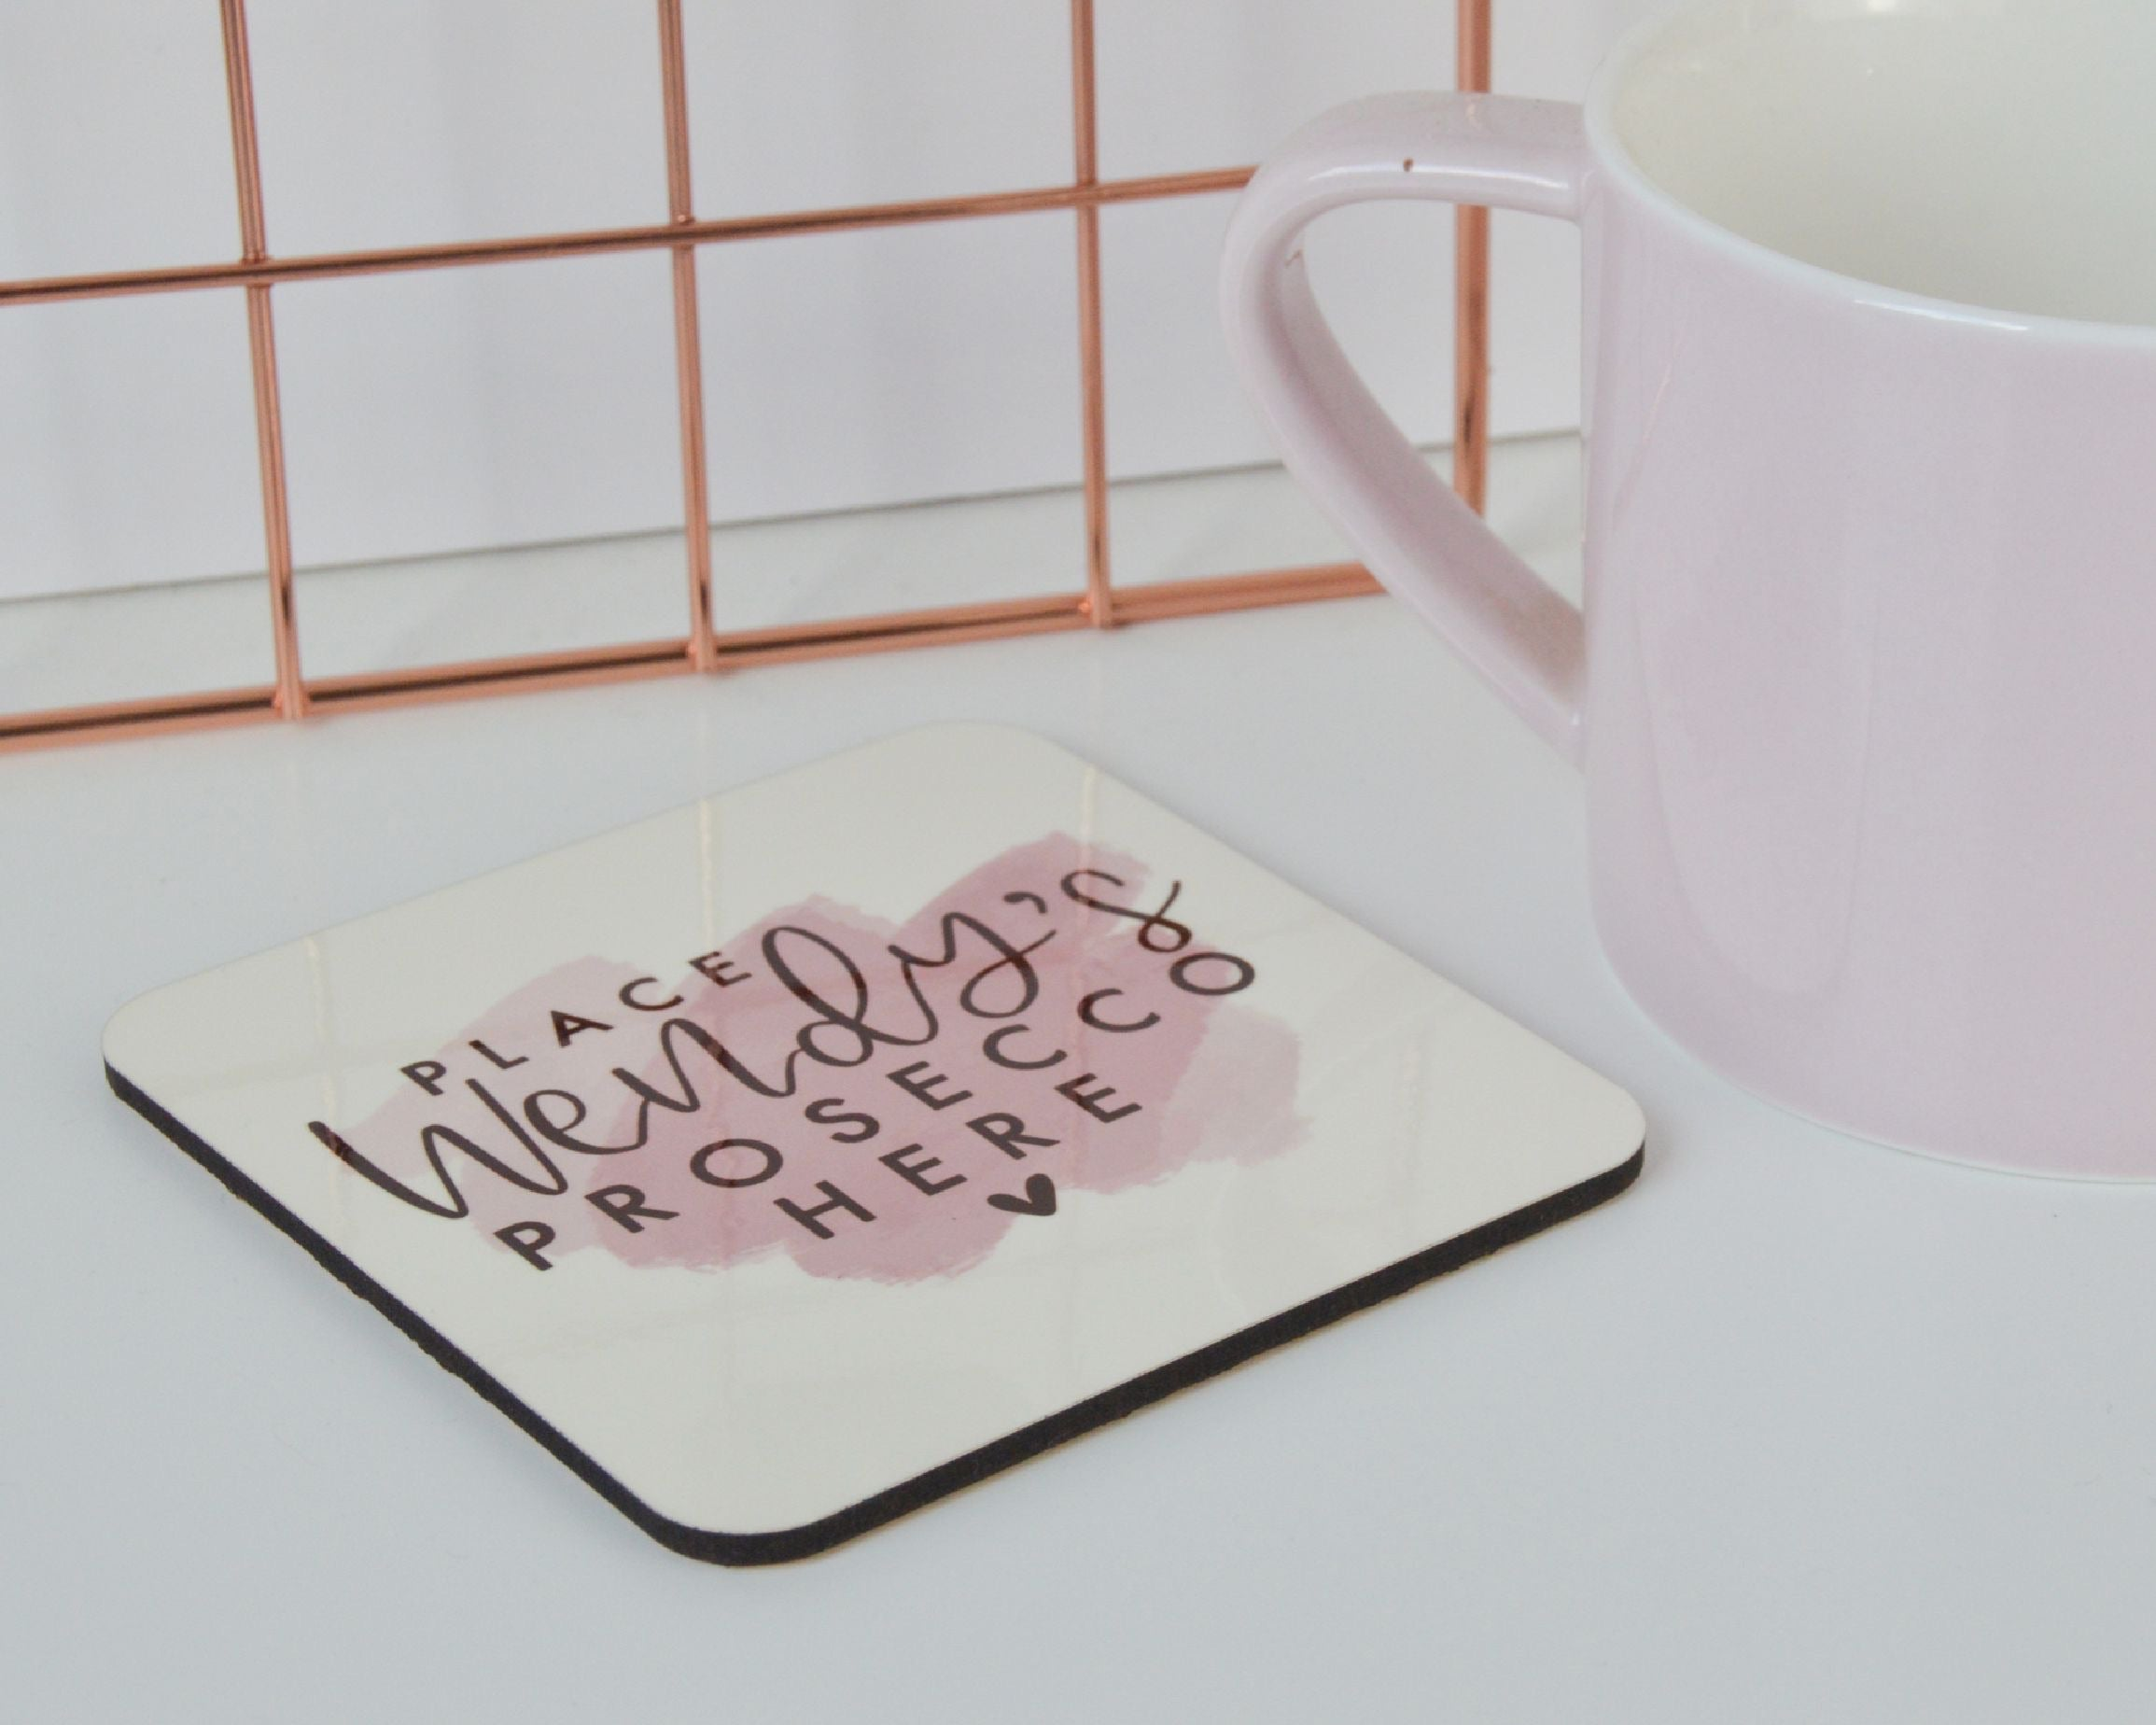 Personalised Place Prosecco Here Coaster - You Make My Dreams